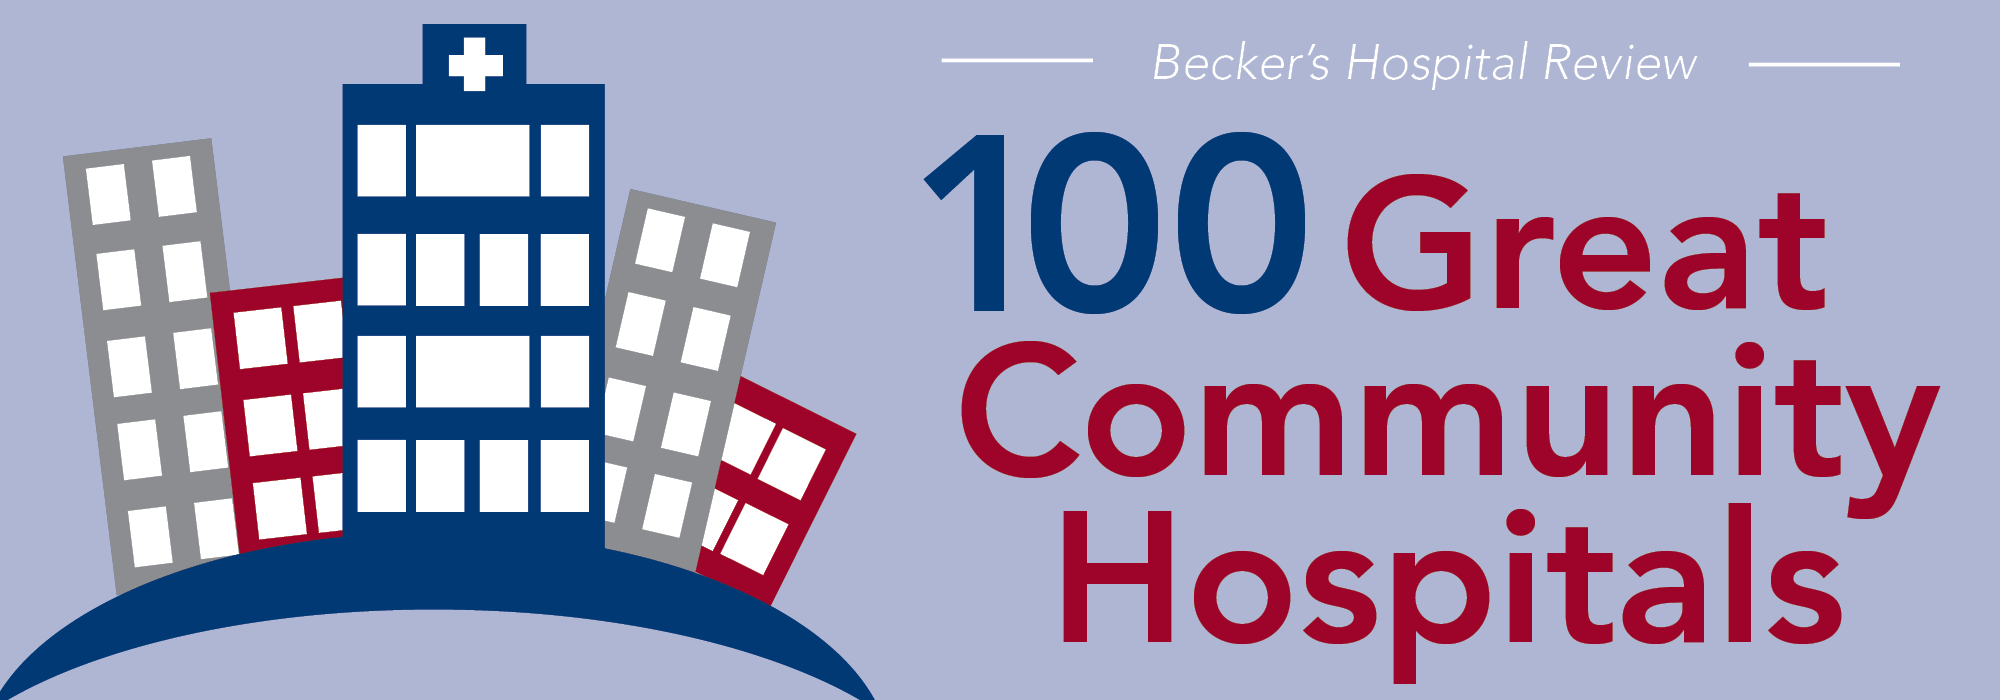 Great Community Hospitals 2016 Logo